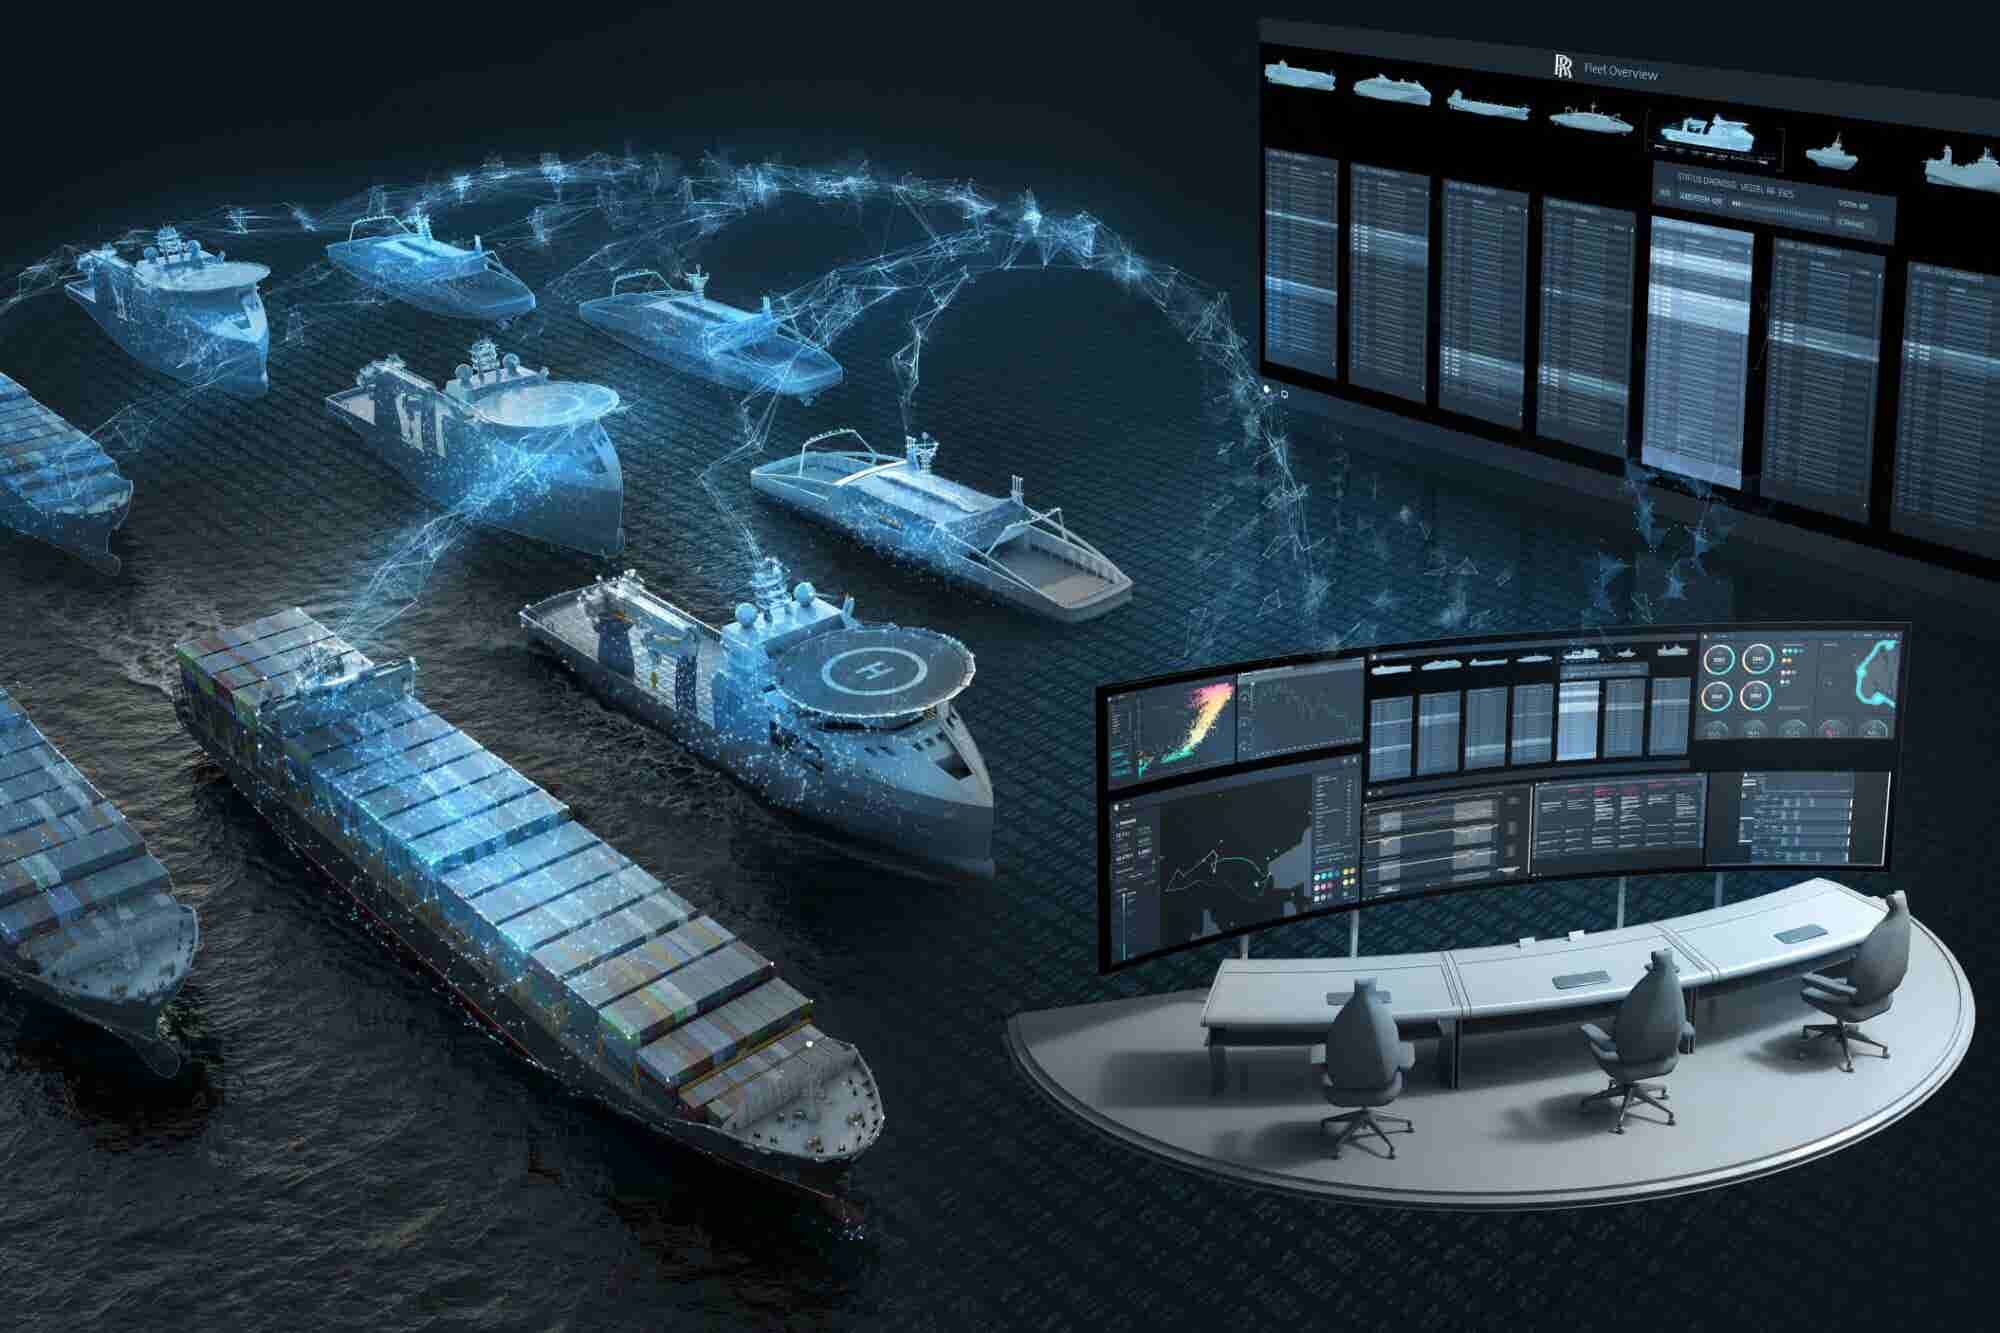 Intel Partners With Rolls-Royce to Develop Self-Sailing Ships